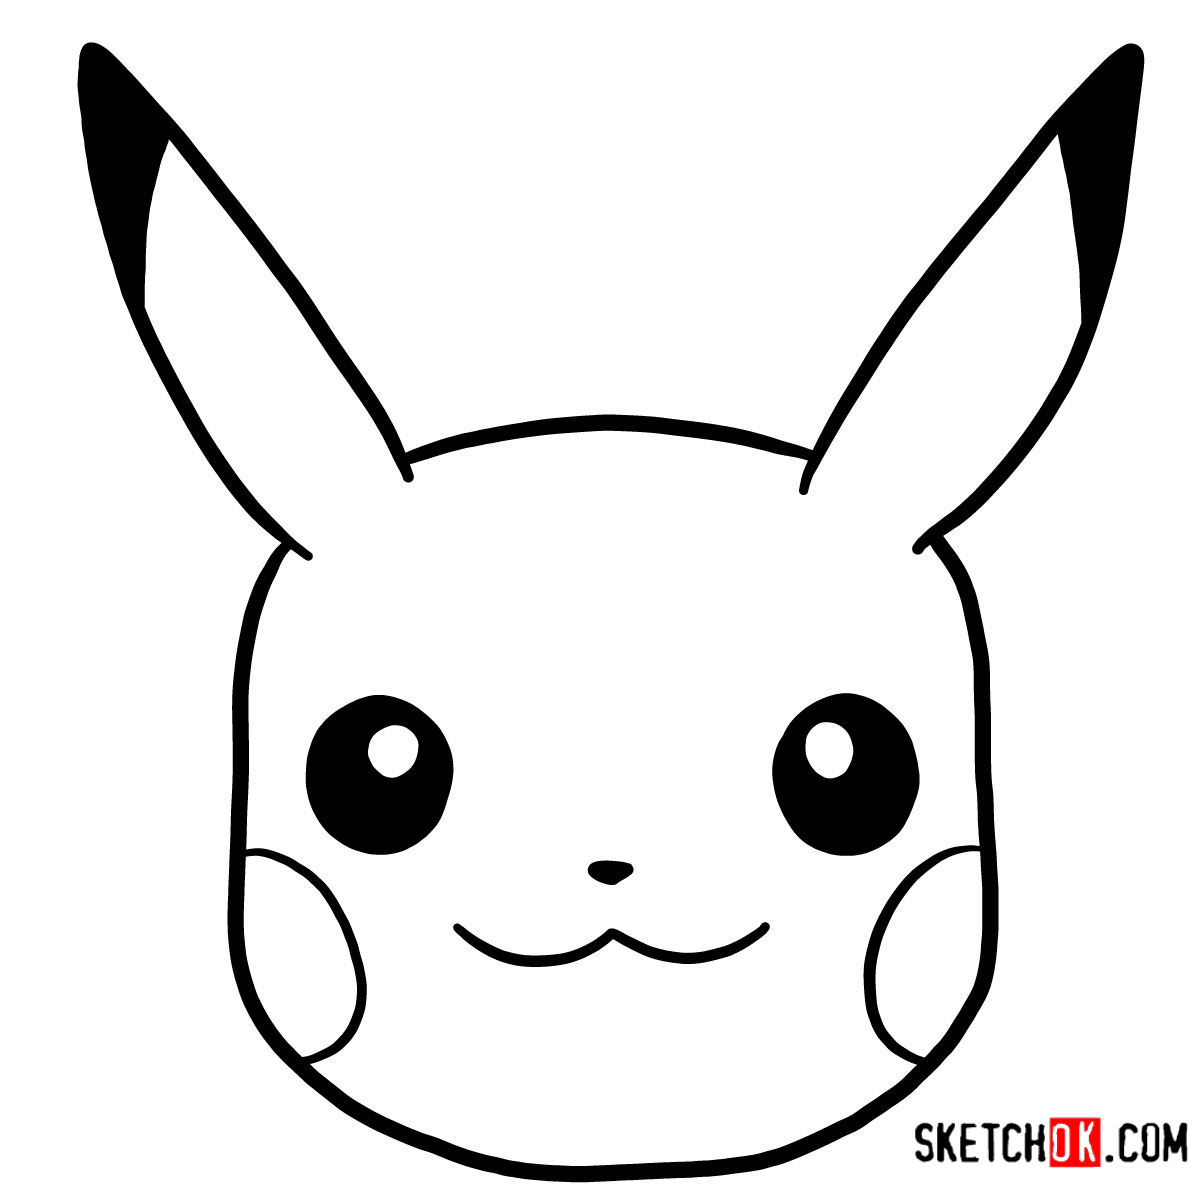 pikachu face coloring page pikachu line drawing at getdrawings free download coloring page face pikachu